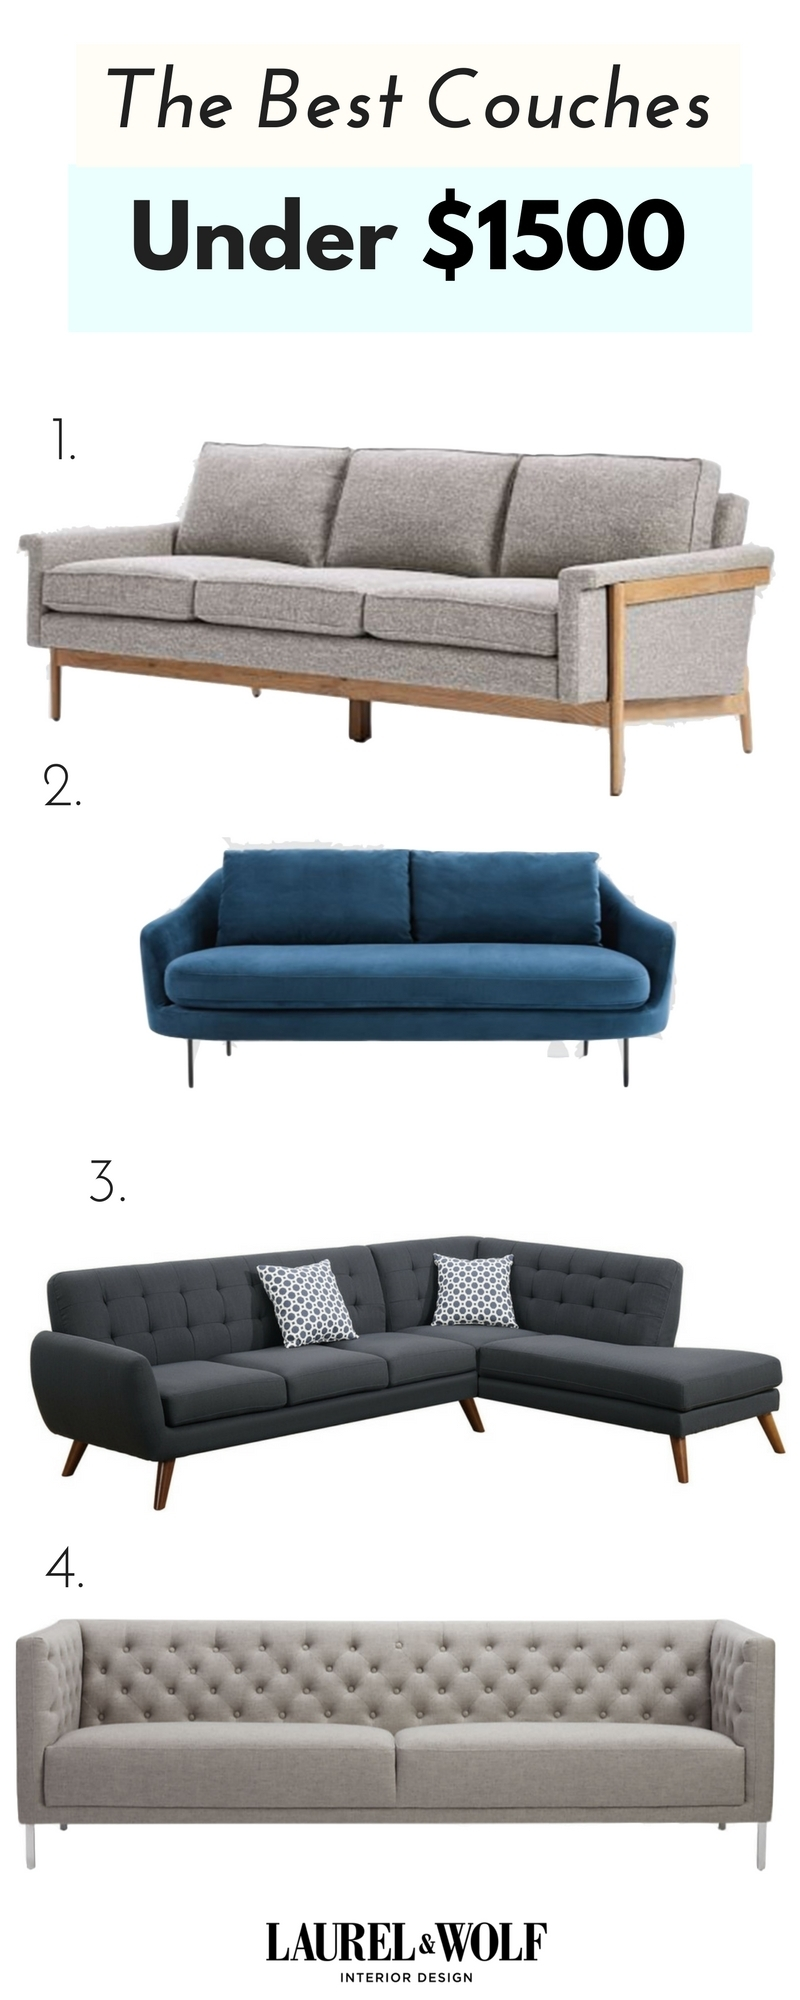 You Don't Need A $10K Couch To Netflix & Chill. From Sectionals To with regard to Sectional Sofas Under 1500